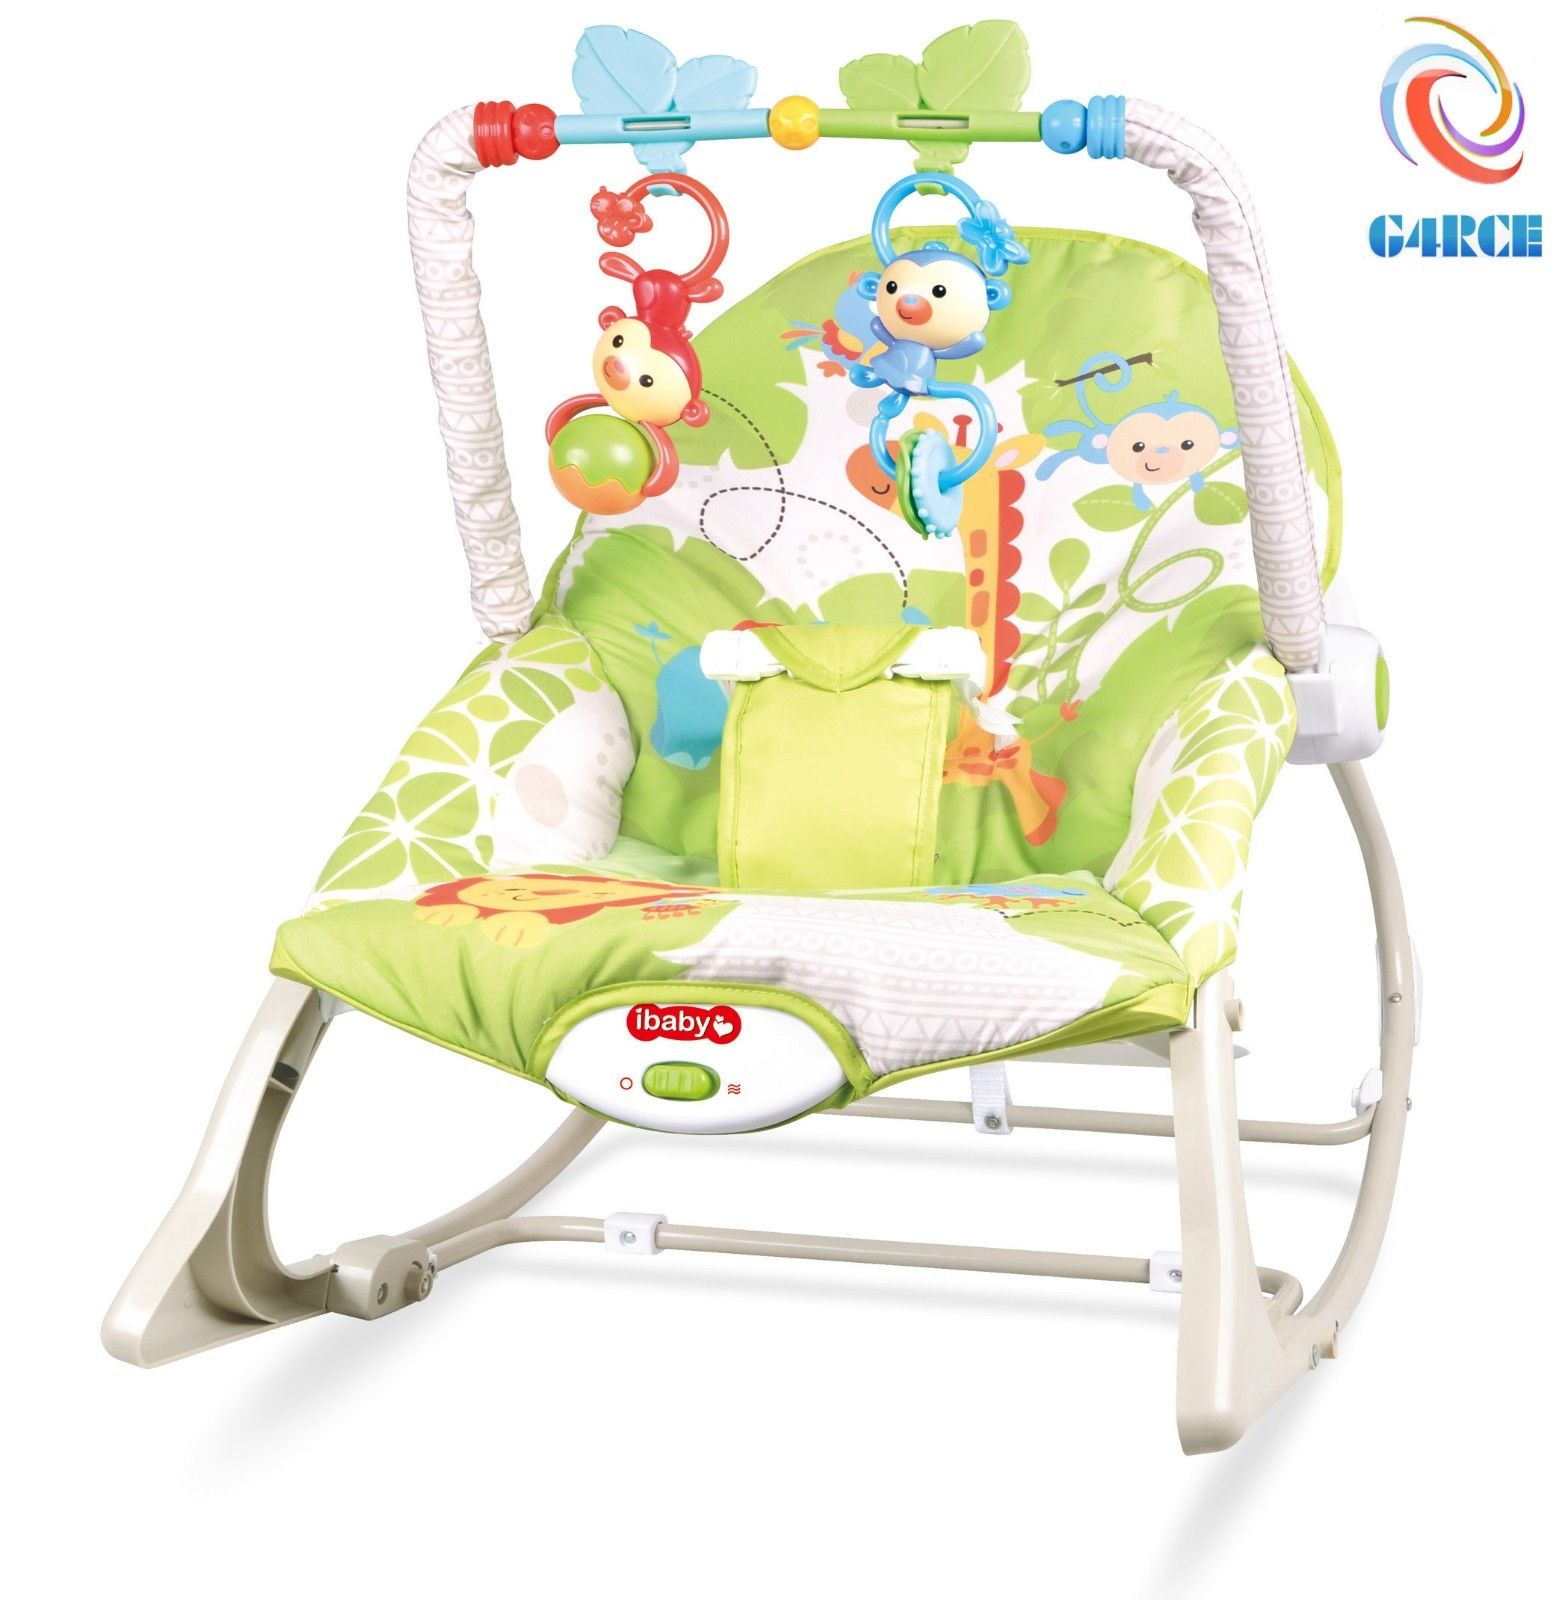 Details About Unisex Baby Rocker Swing Reclining Chair Bouncer Lay Play Hanging Toys 0m